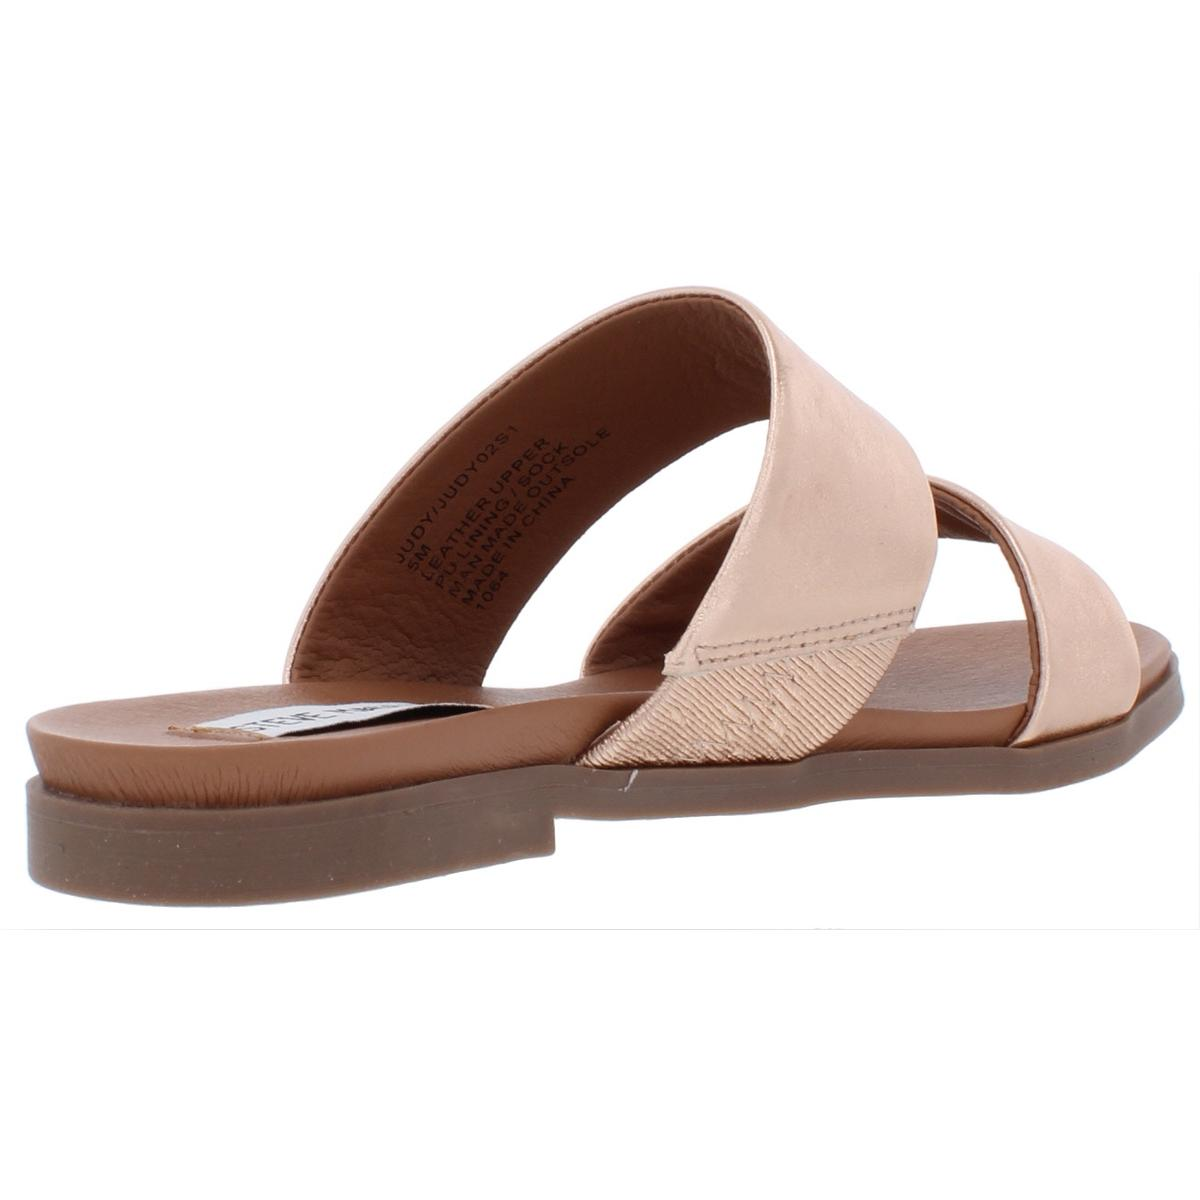 Steve-Madden-Womens-Judy-Leather-Sandals-Flats-Shoes-BHFO-7653 thumbnail 9